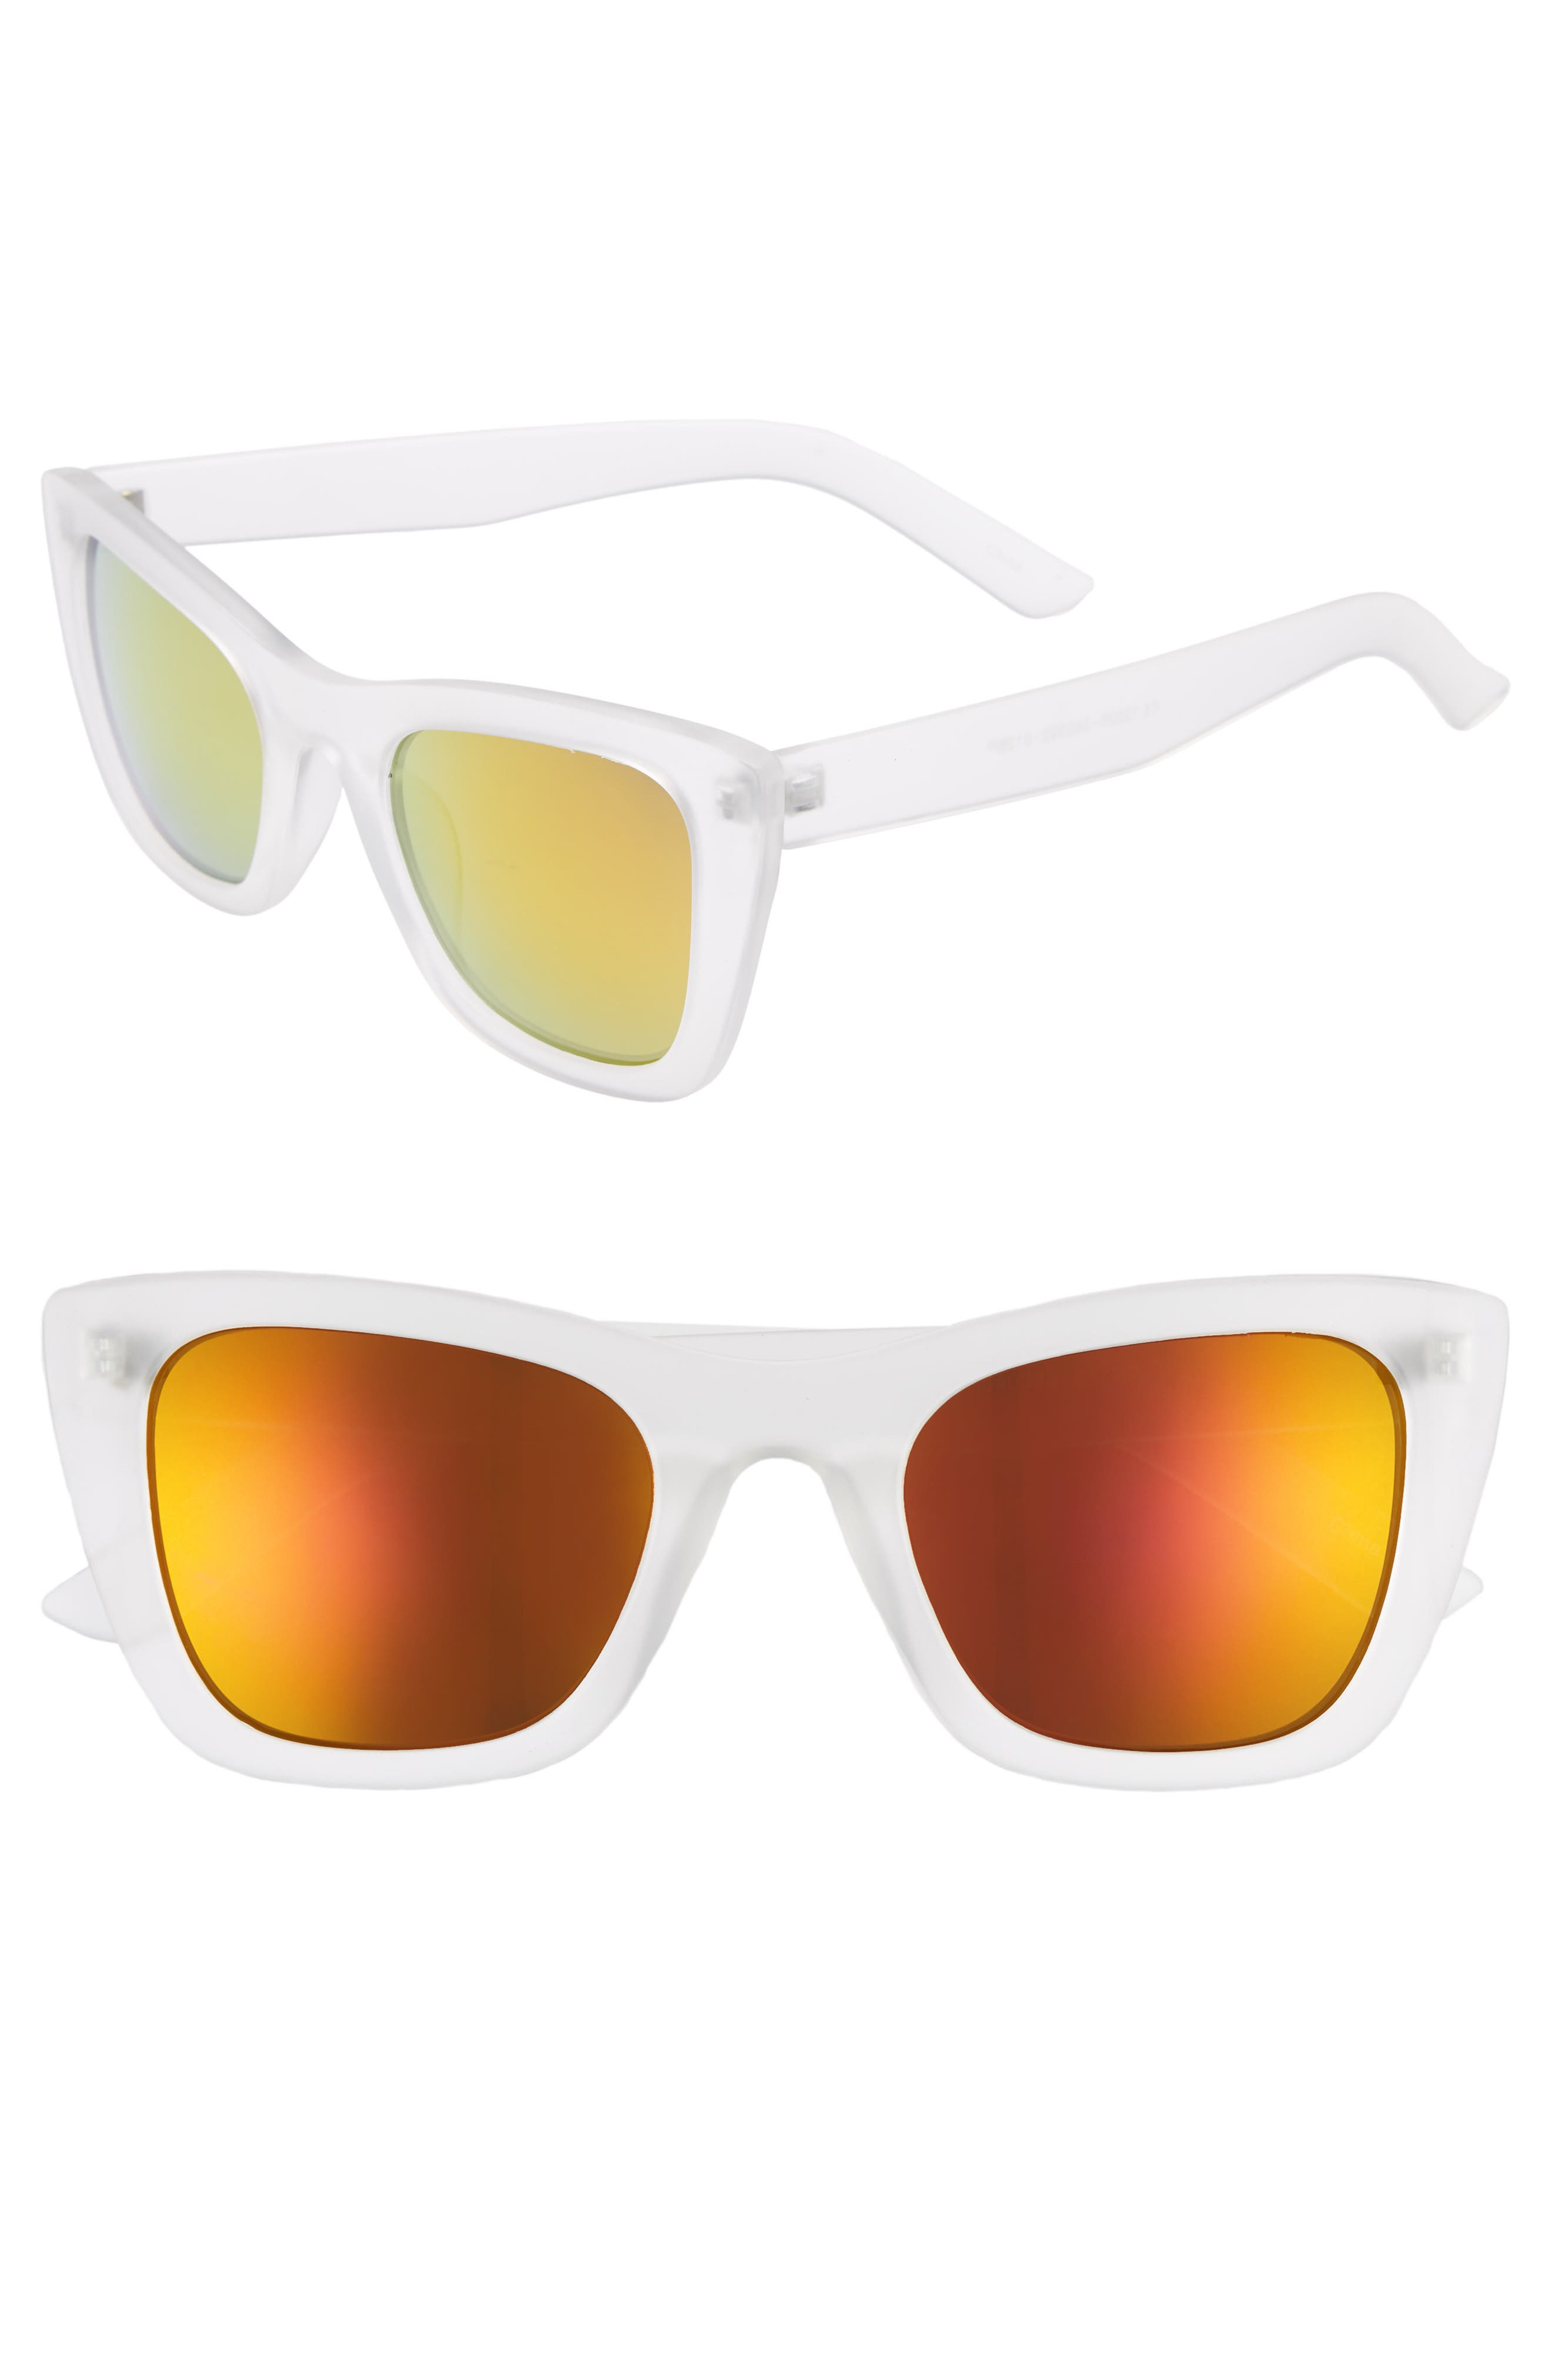 51mm Translucent Square Sunglasses,                         Main,                         color, CLEAR/ GOLD